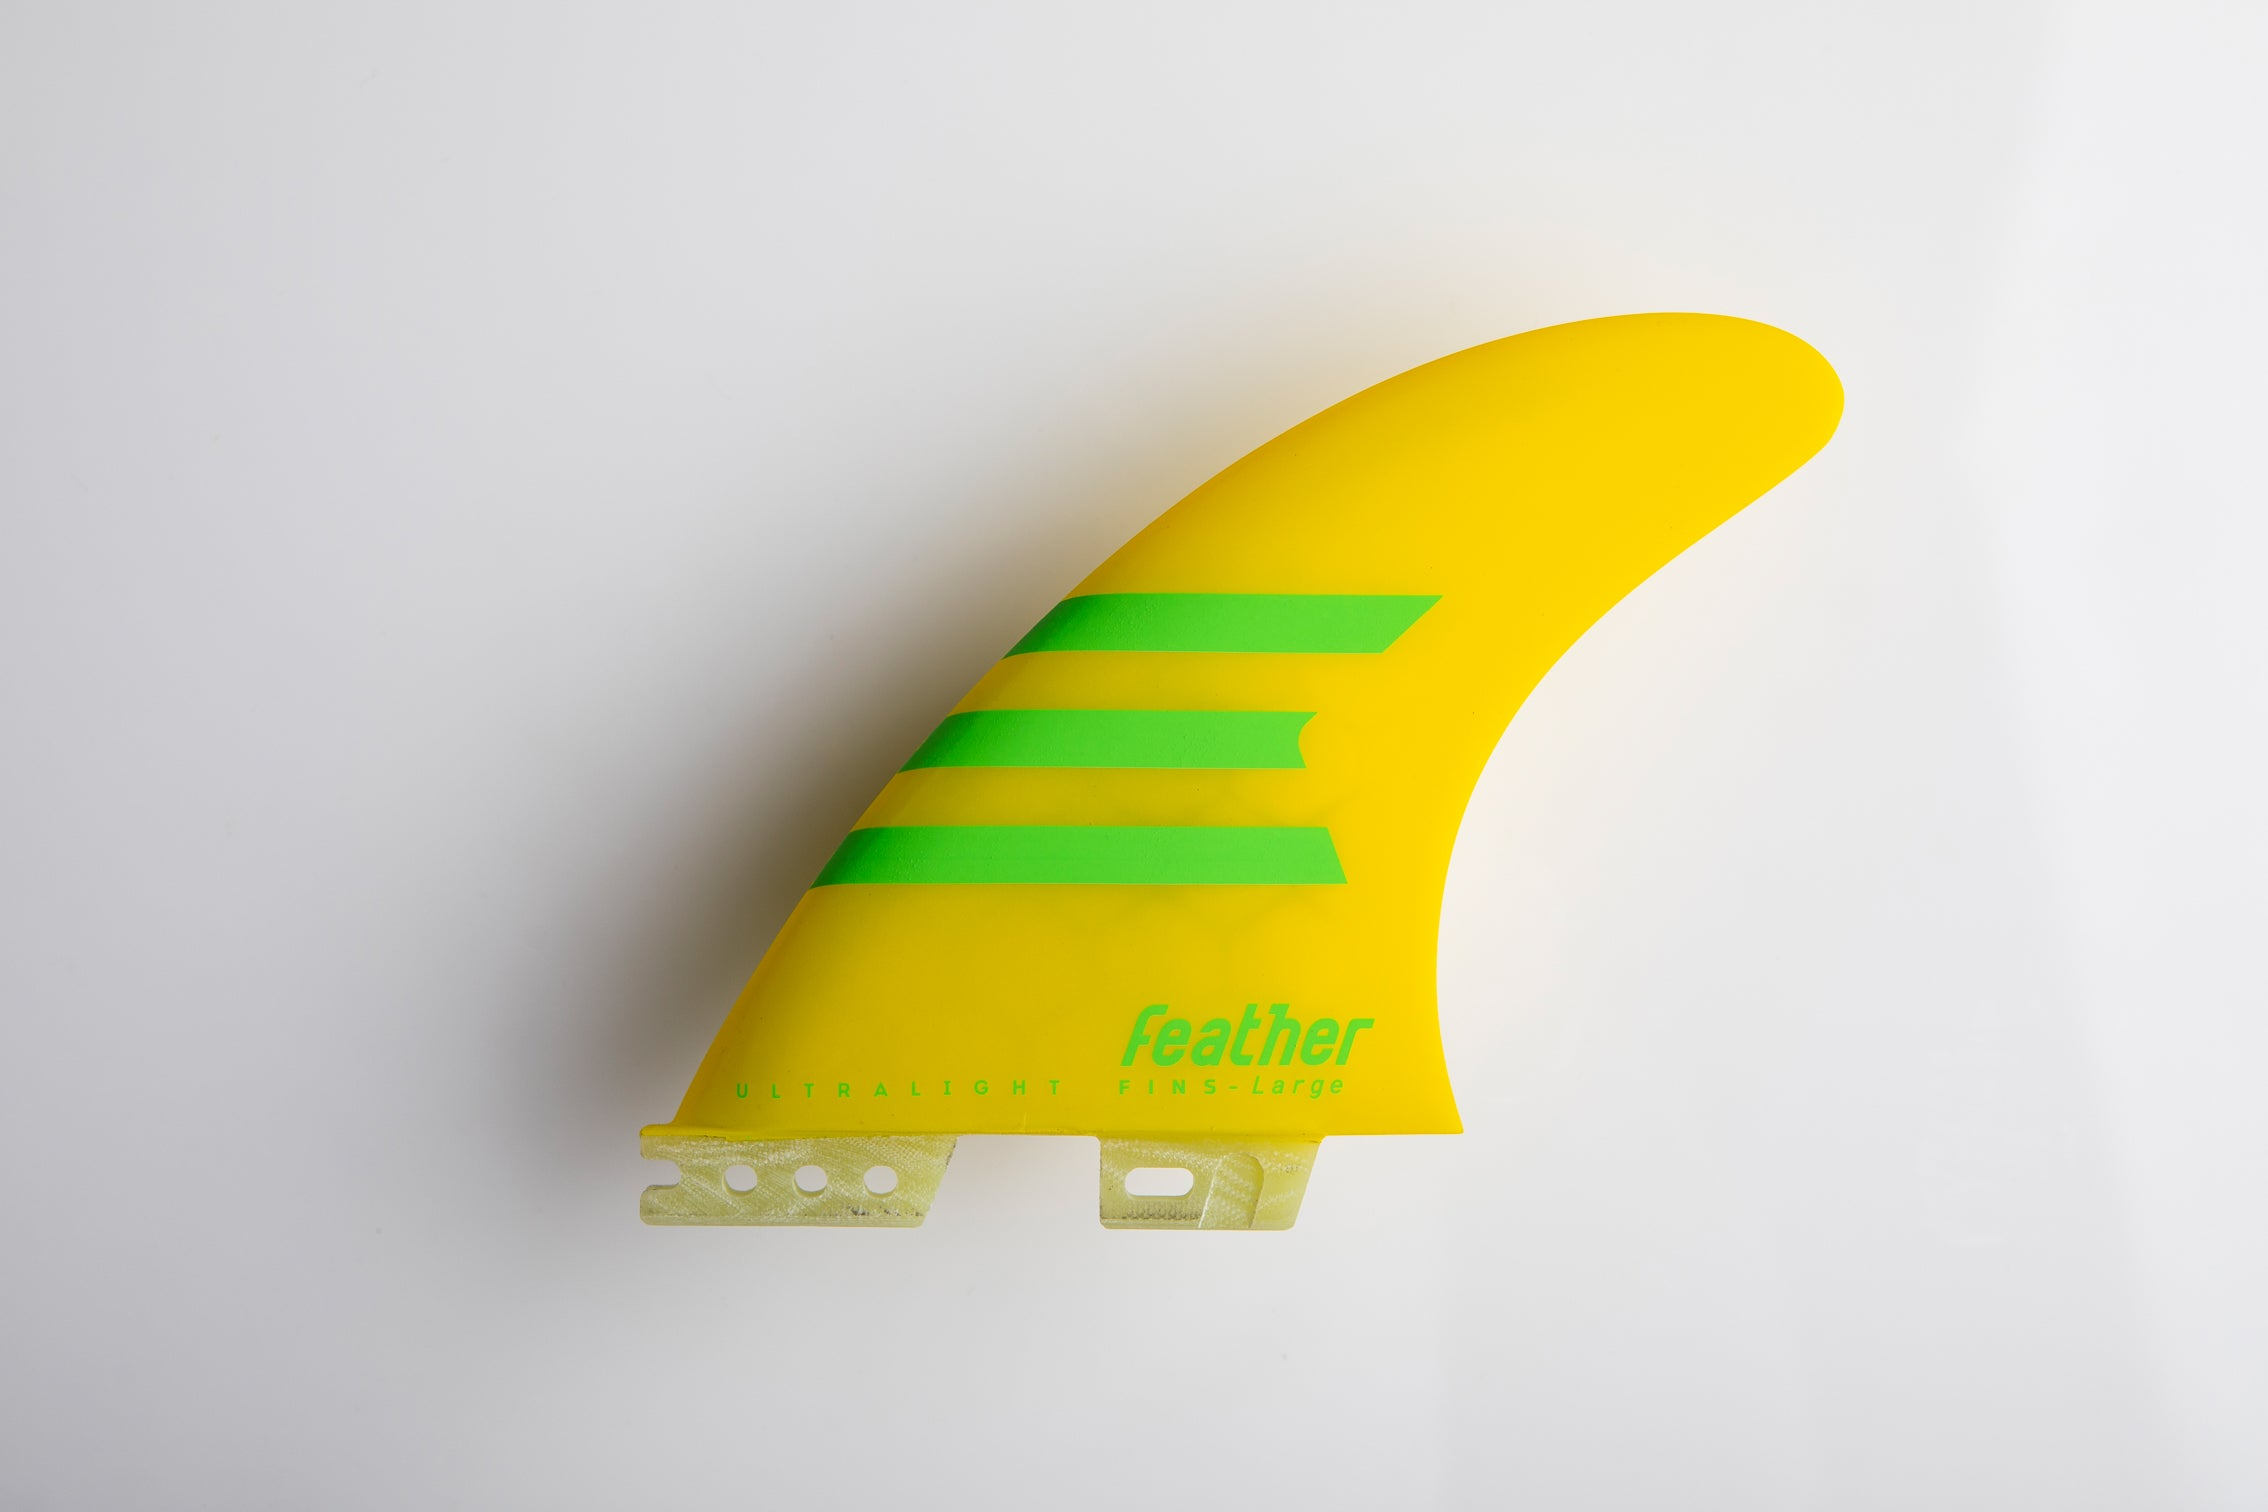 ULTRALIGHT EPOXY HC YELLOW/GREEN. CLICK TAB